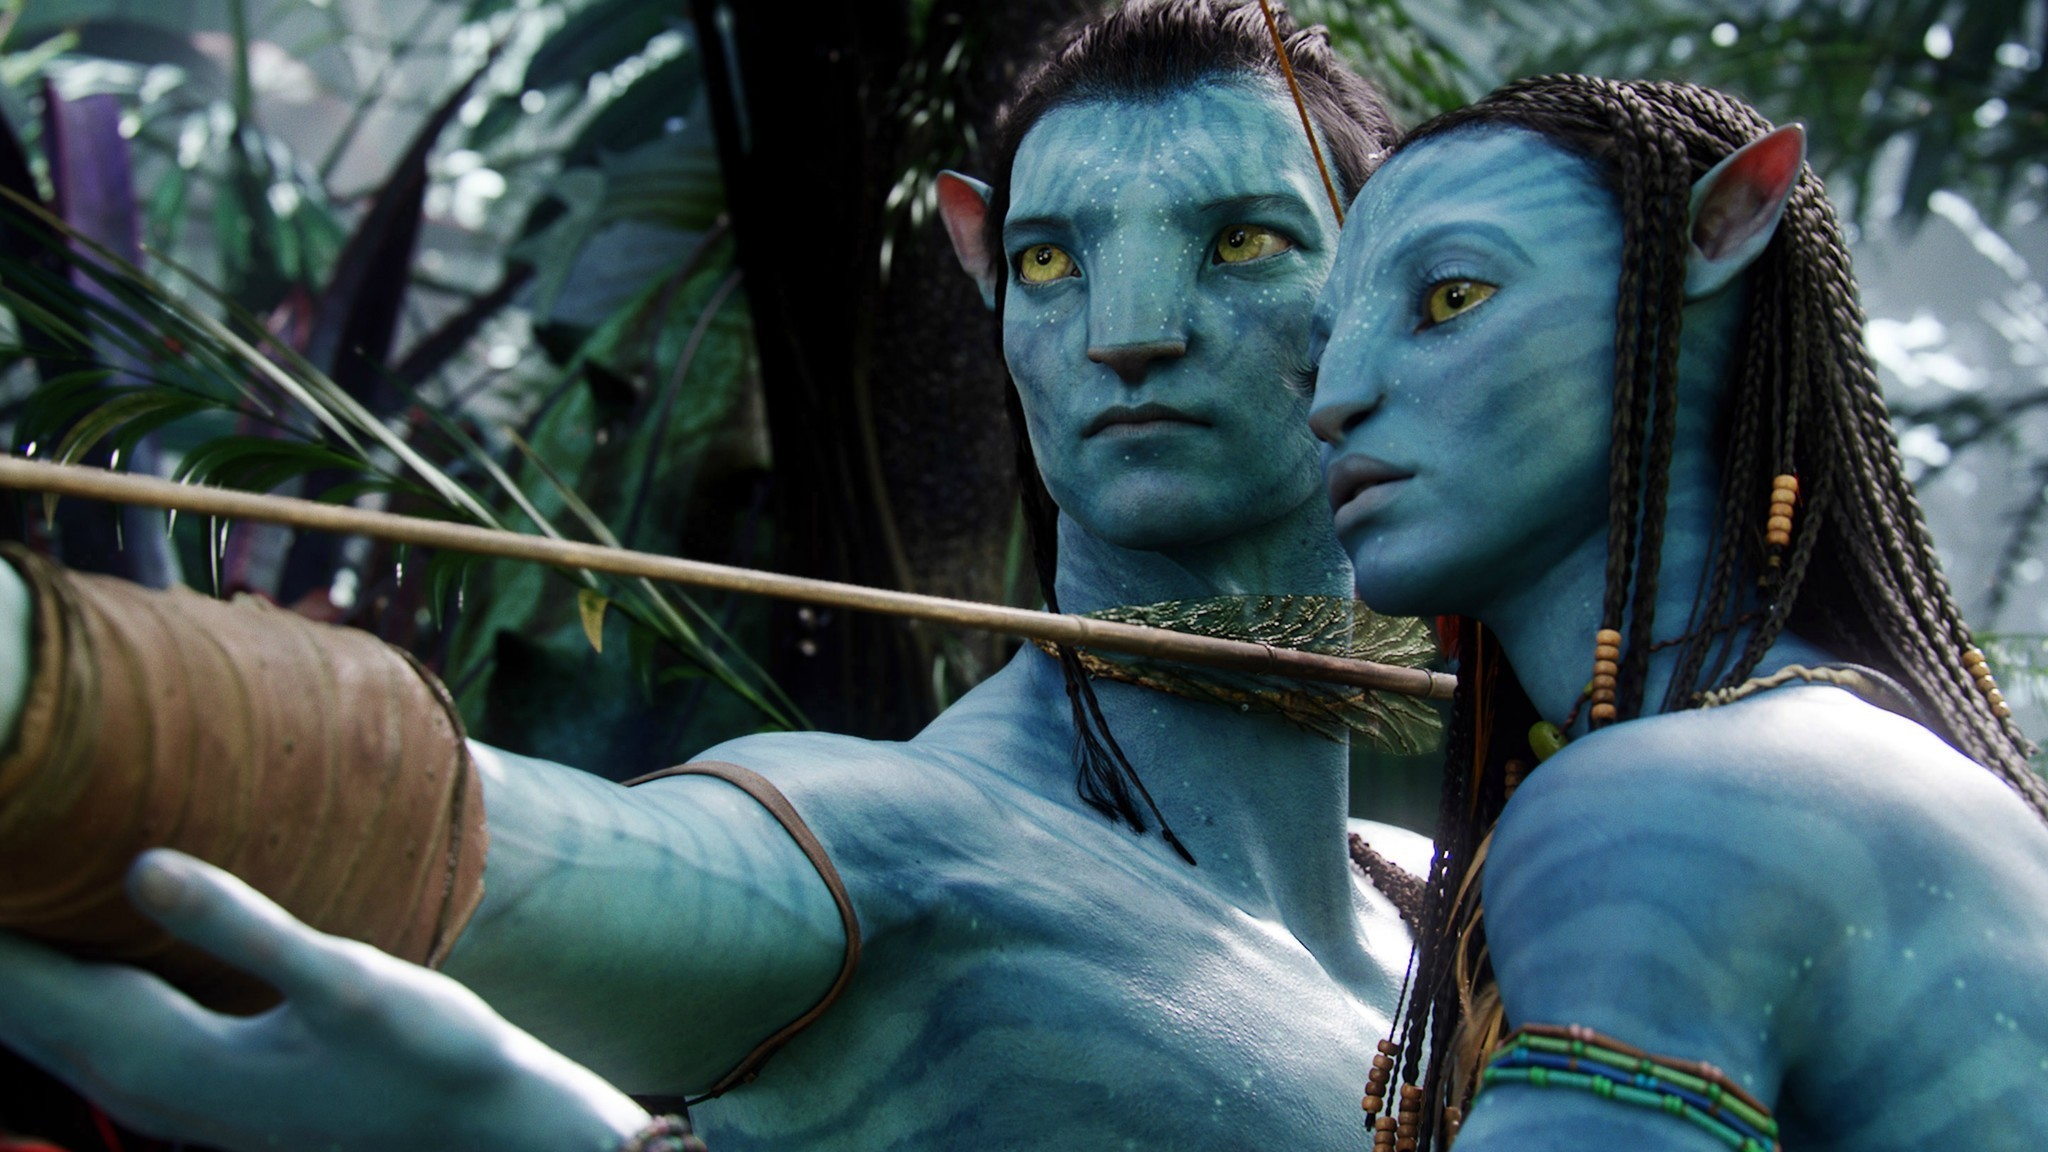 Avatar and its four planned sequels spawn book series LA Times